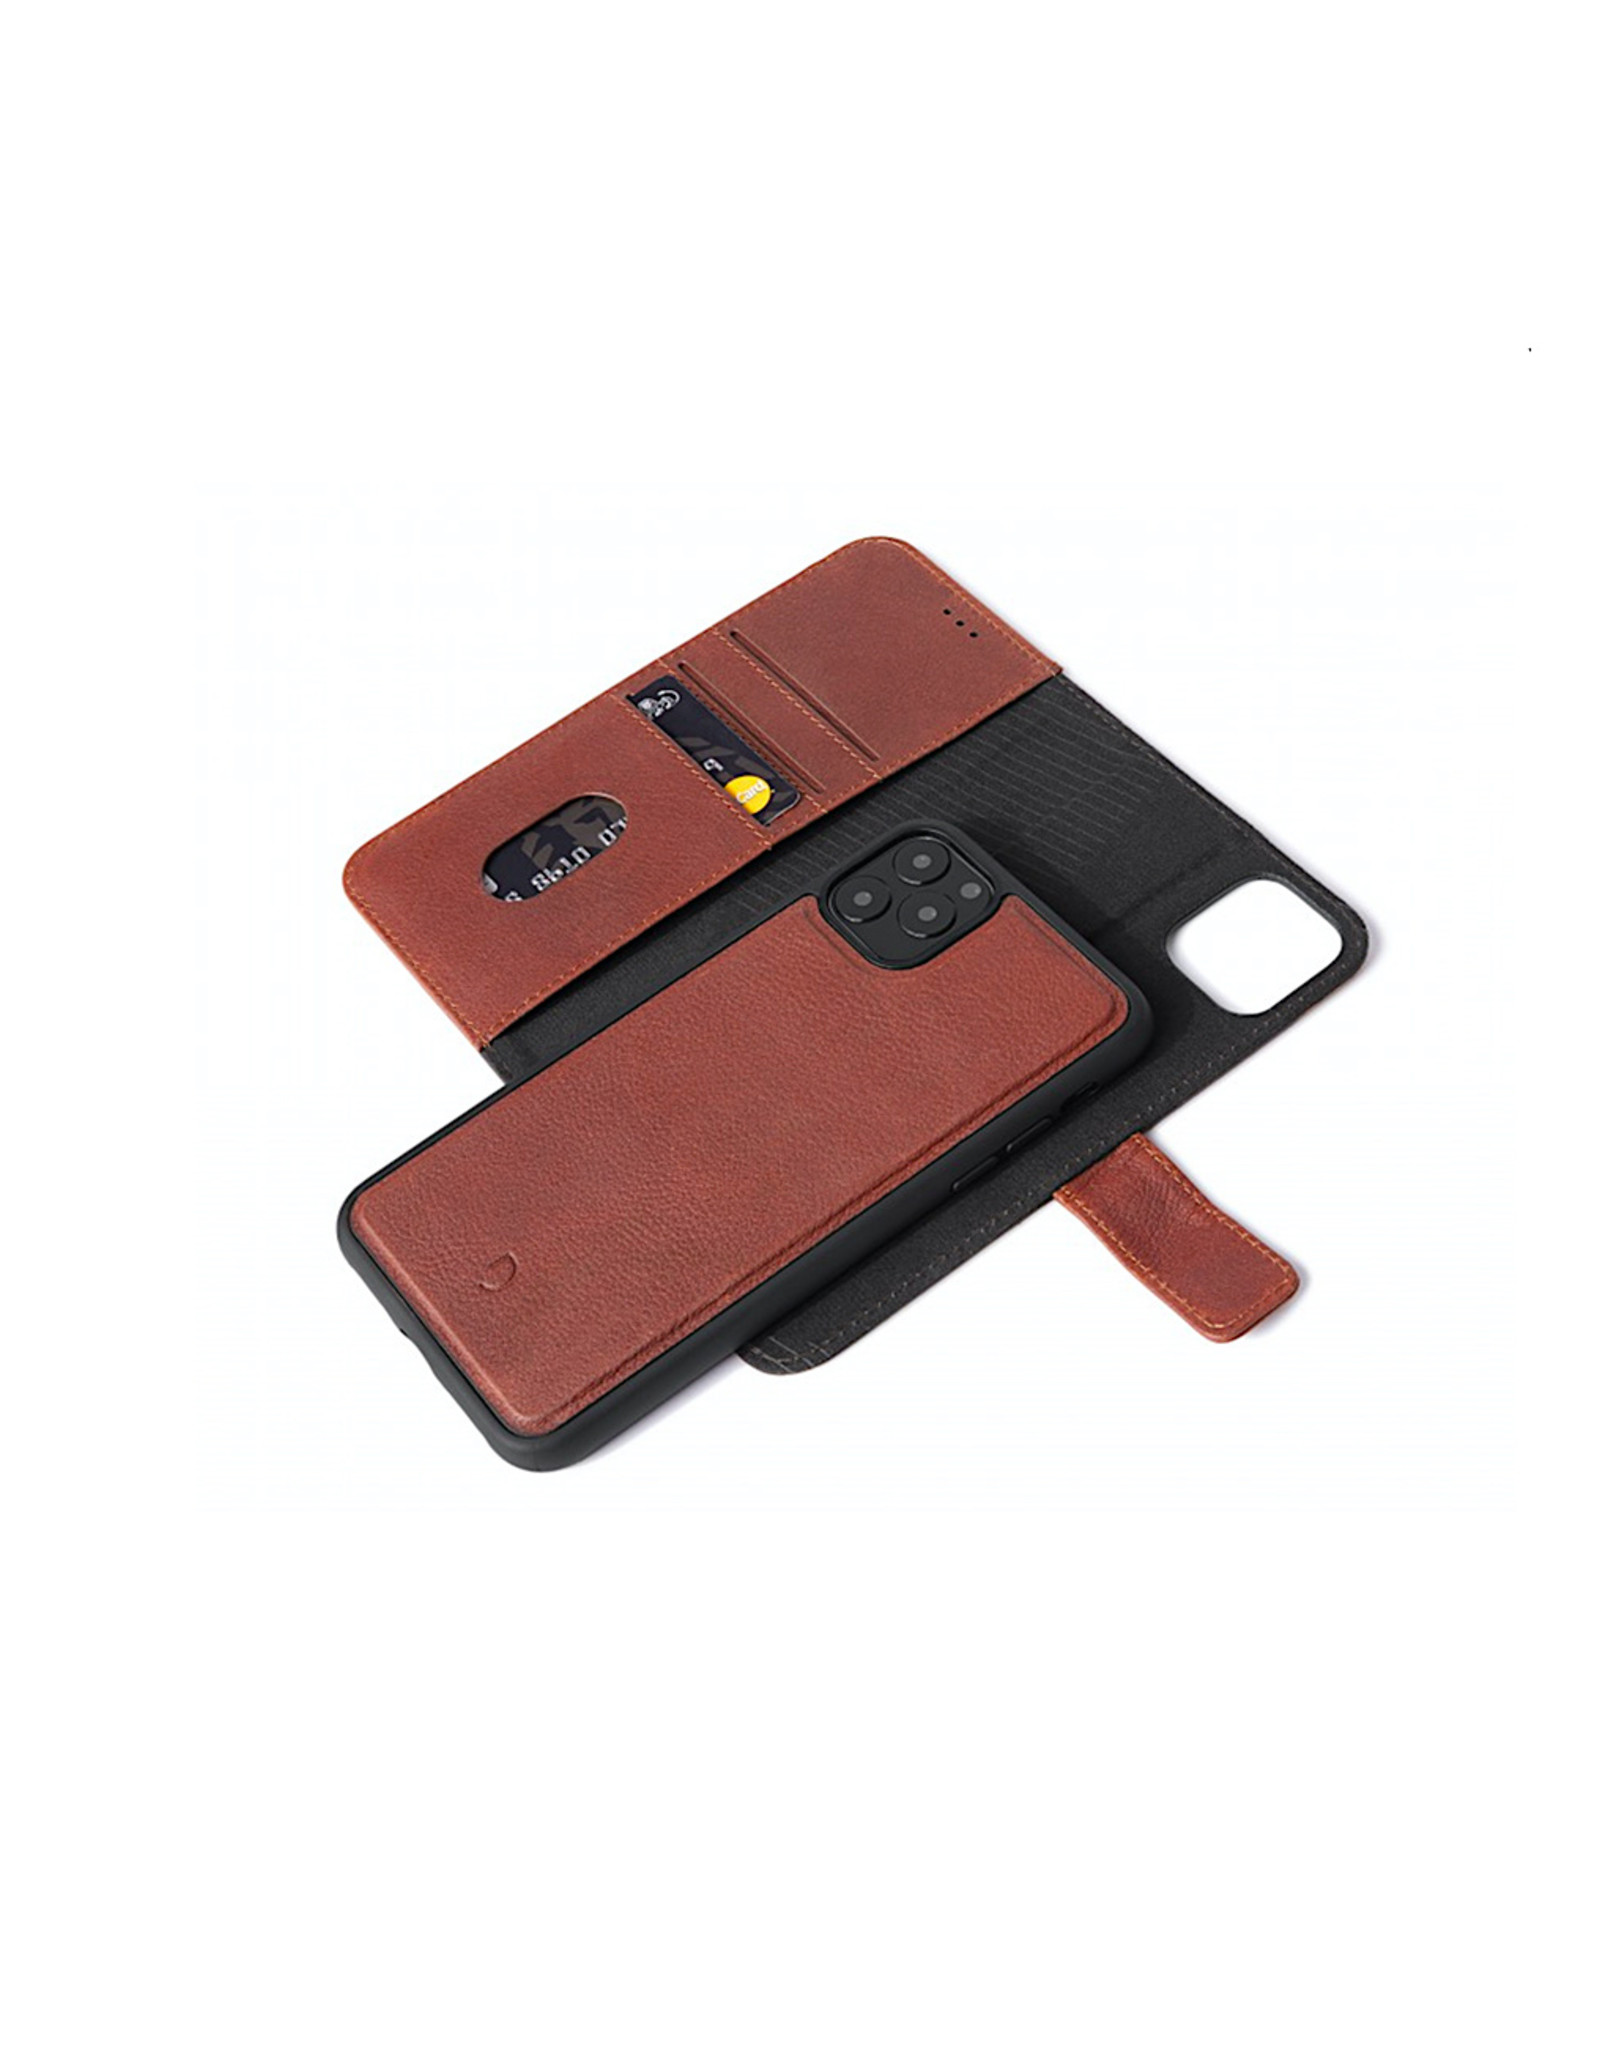 SO Decoded Leather Detachable Wallet for iPhone 11 Pro Max Full Grain Leather - Brown DC-D9IPOXIMDW2CBN